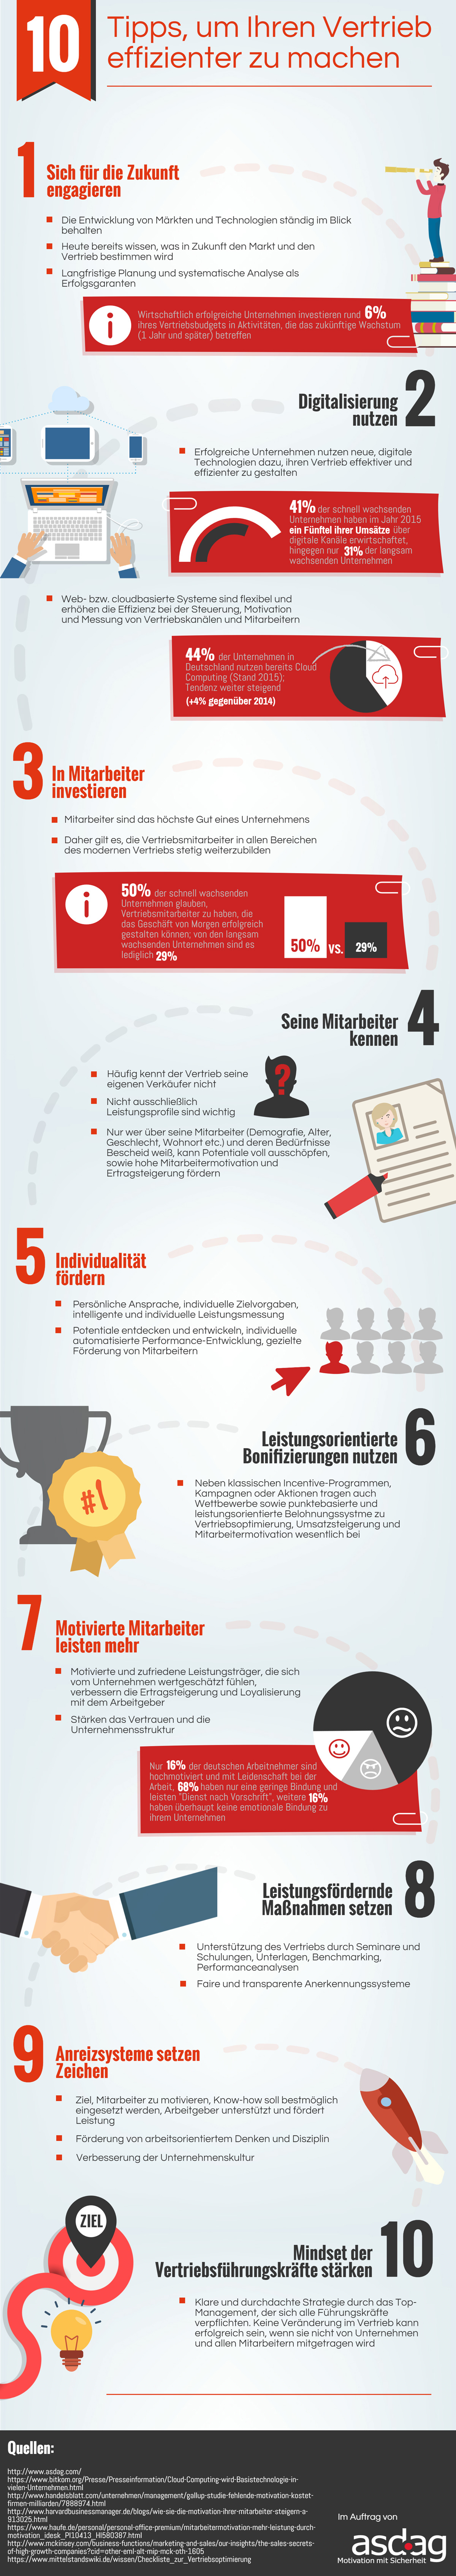 Charmant Tipps Weiter Kerja Kerajaan Ideen - Entry Level Resume ...